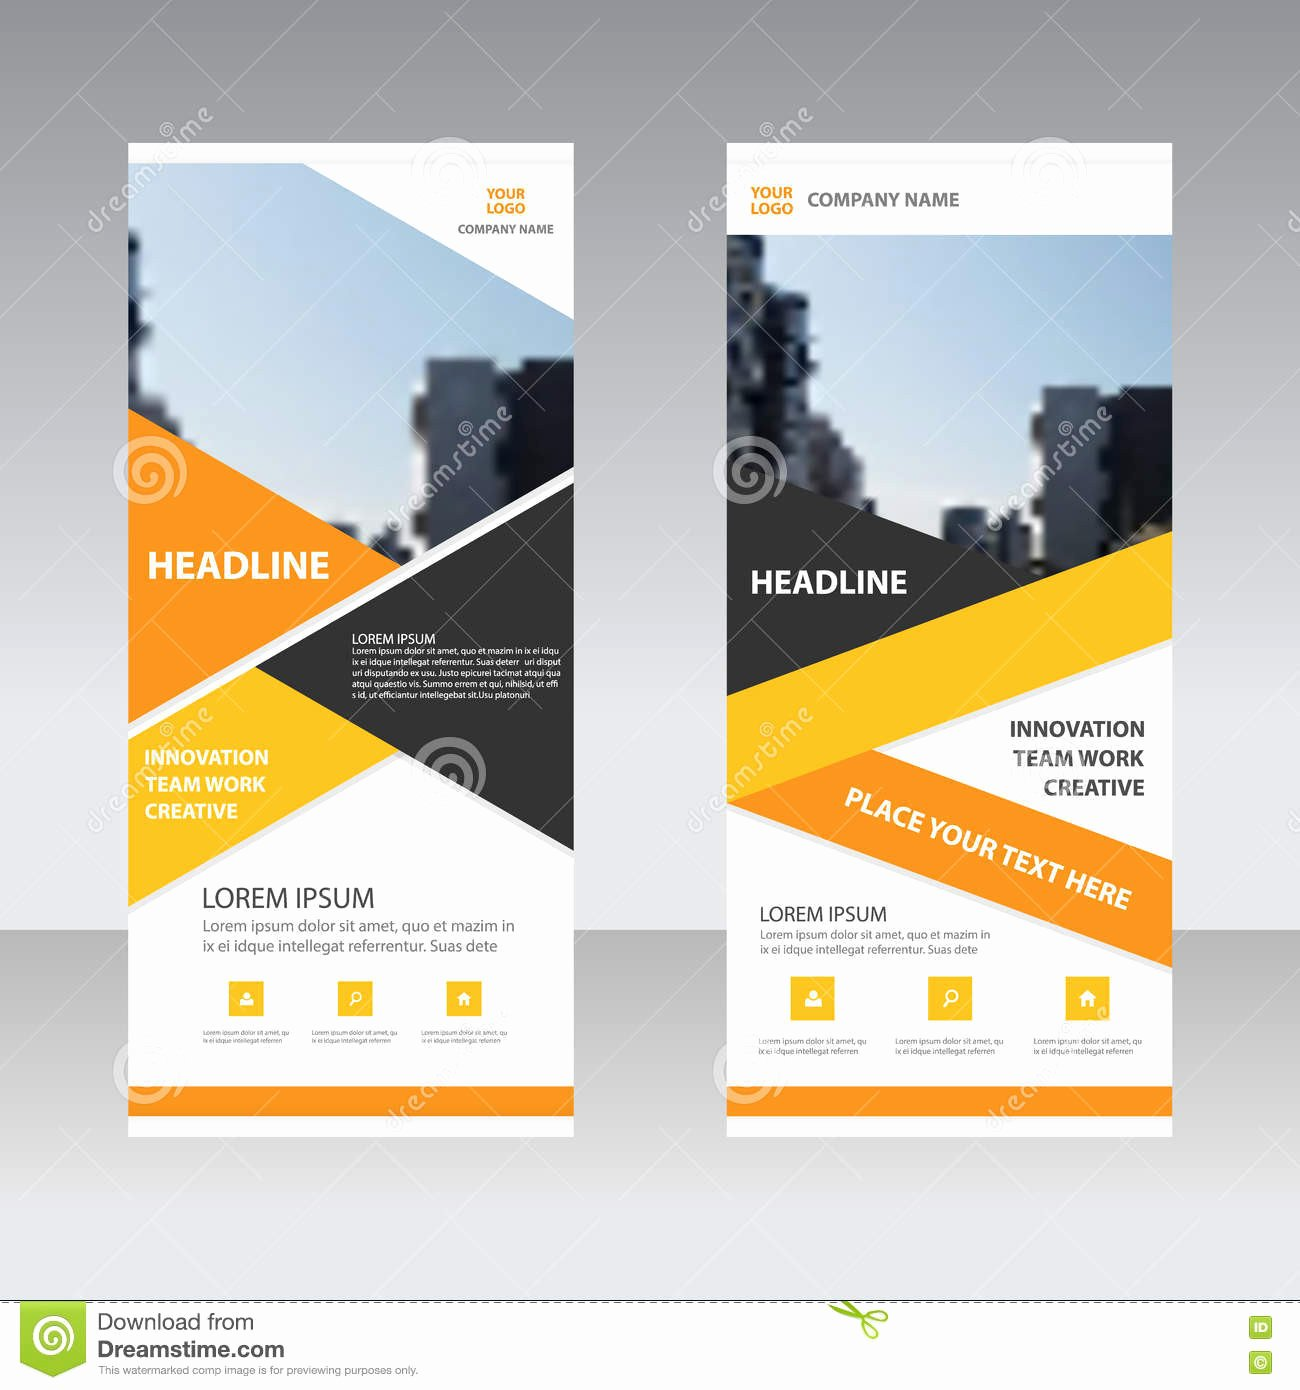 Pop Up Banner Template New Banner Design Wohnideen Infolead Mobi Extraordinary Ideas